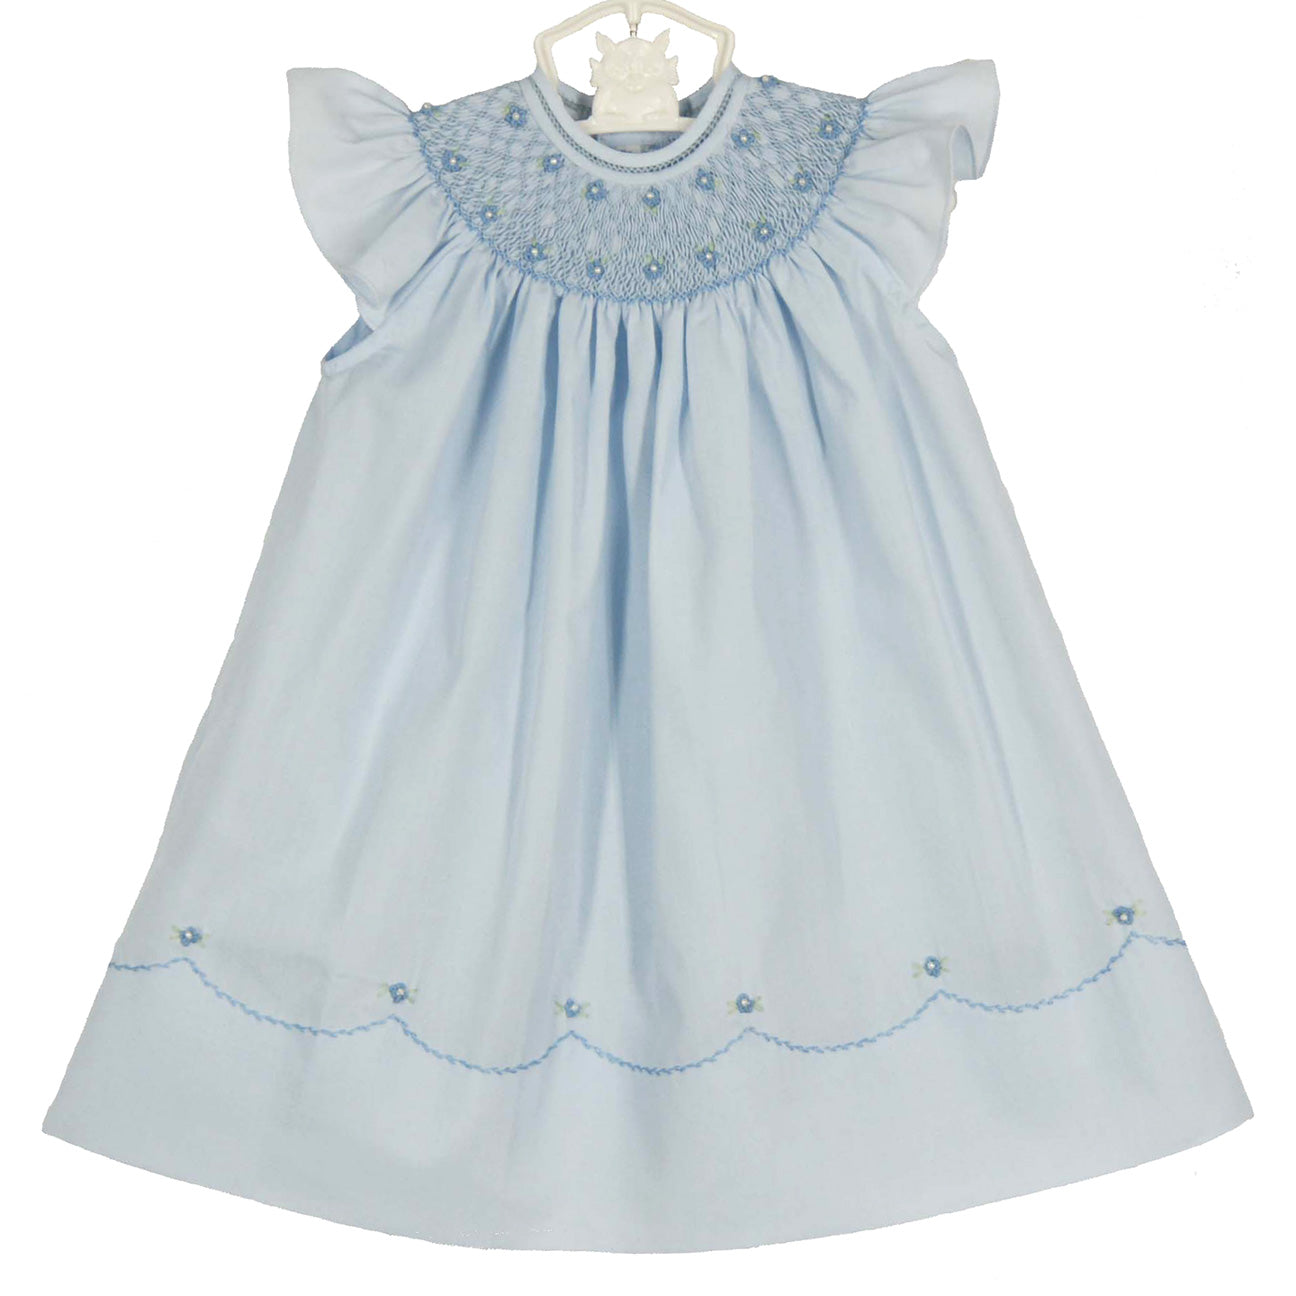 Blue Pearl Flower Midgie Bishop Dress with Fly Sleeves